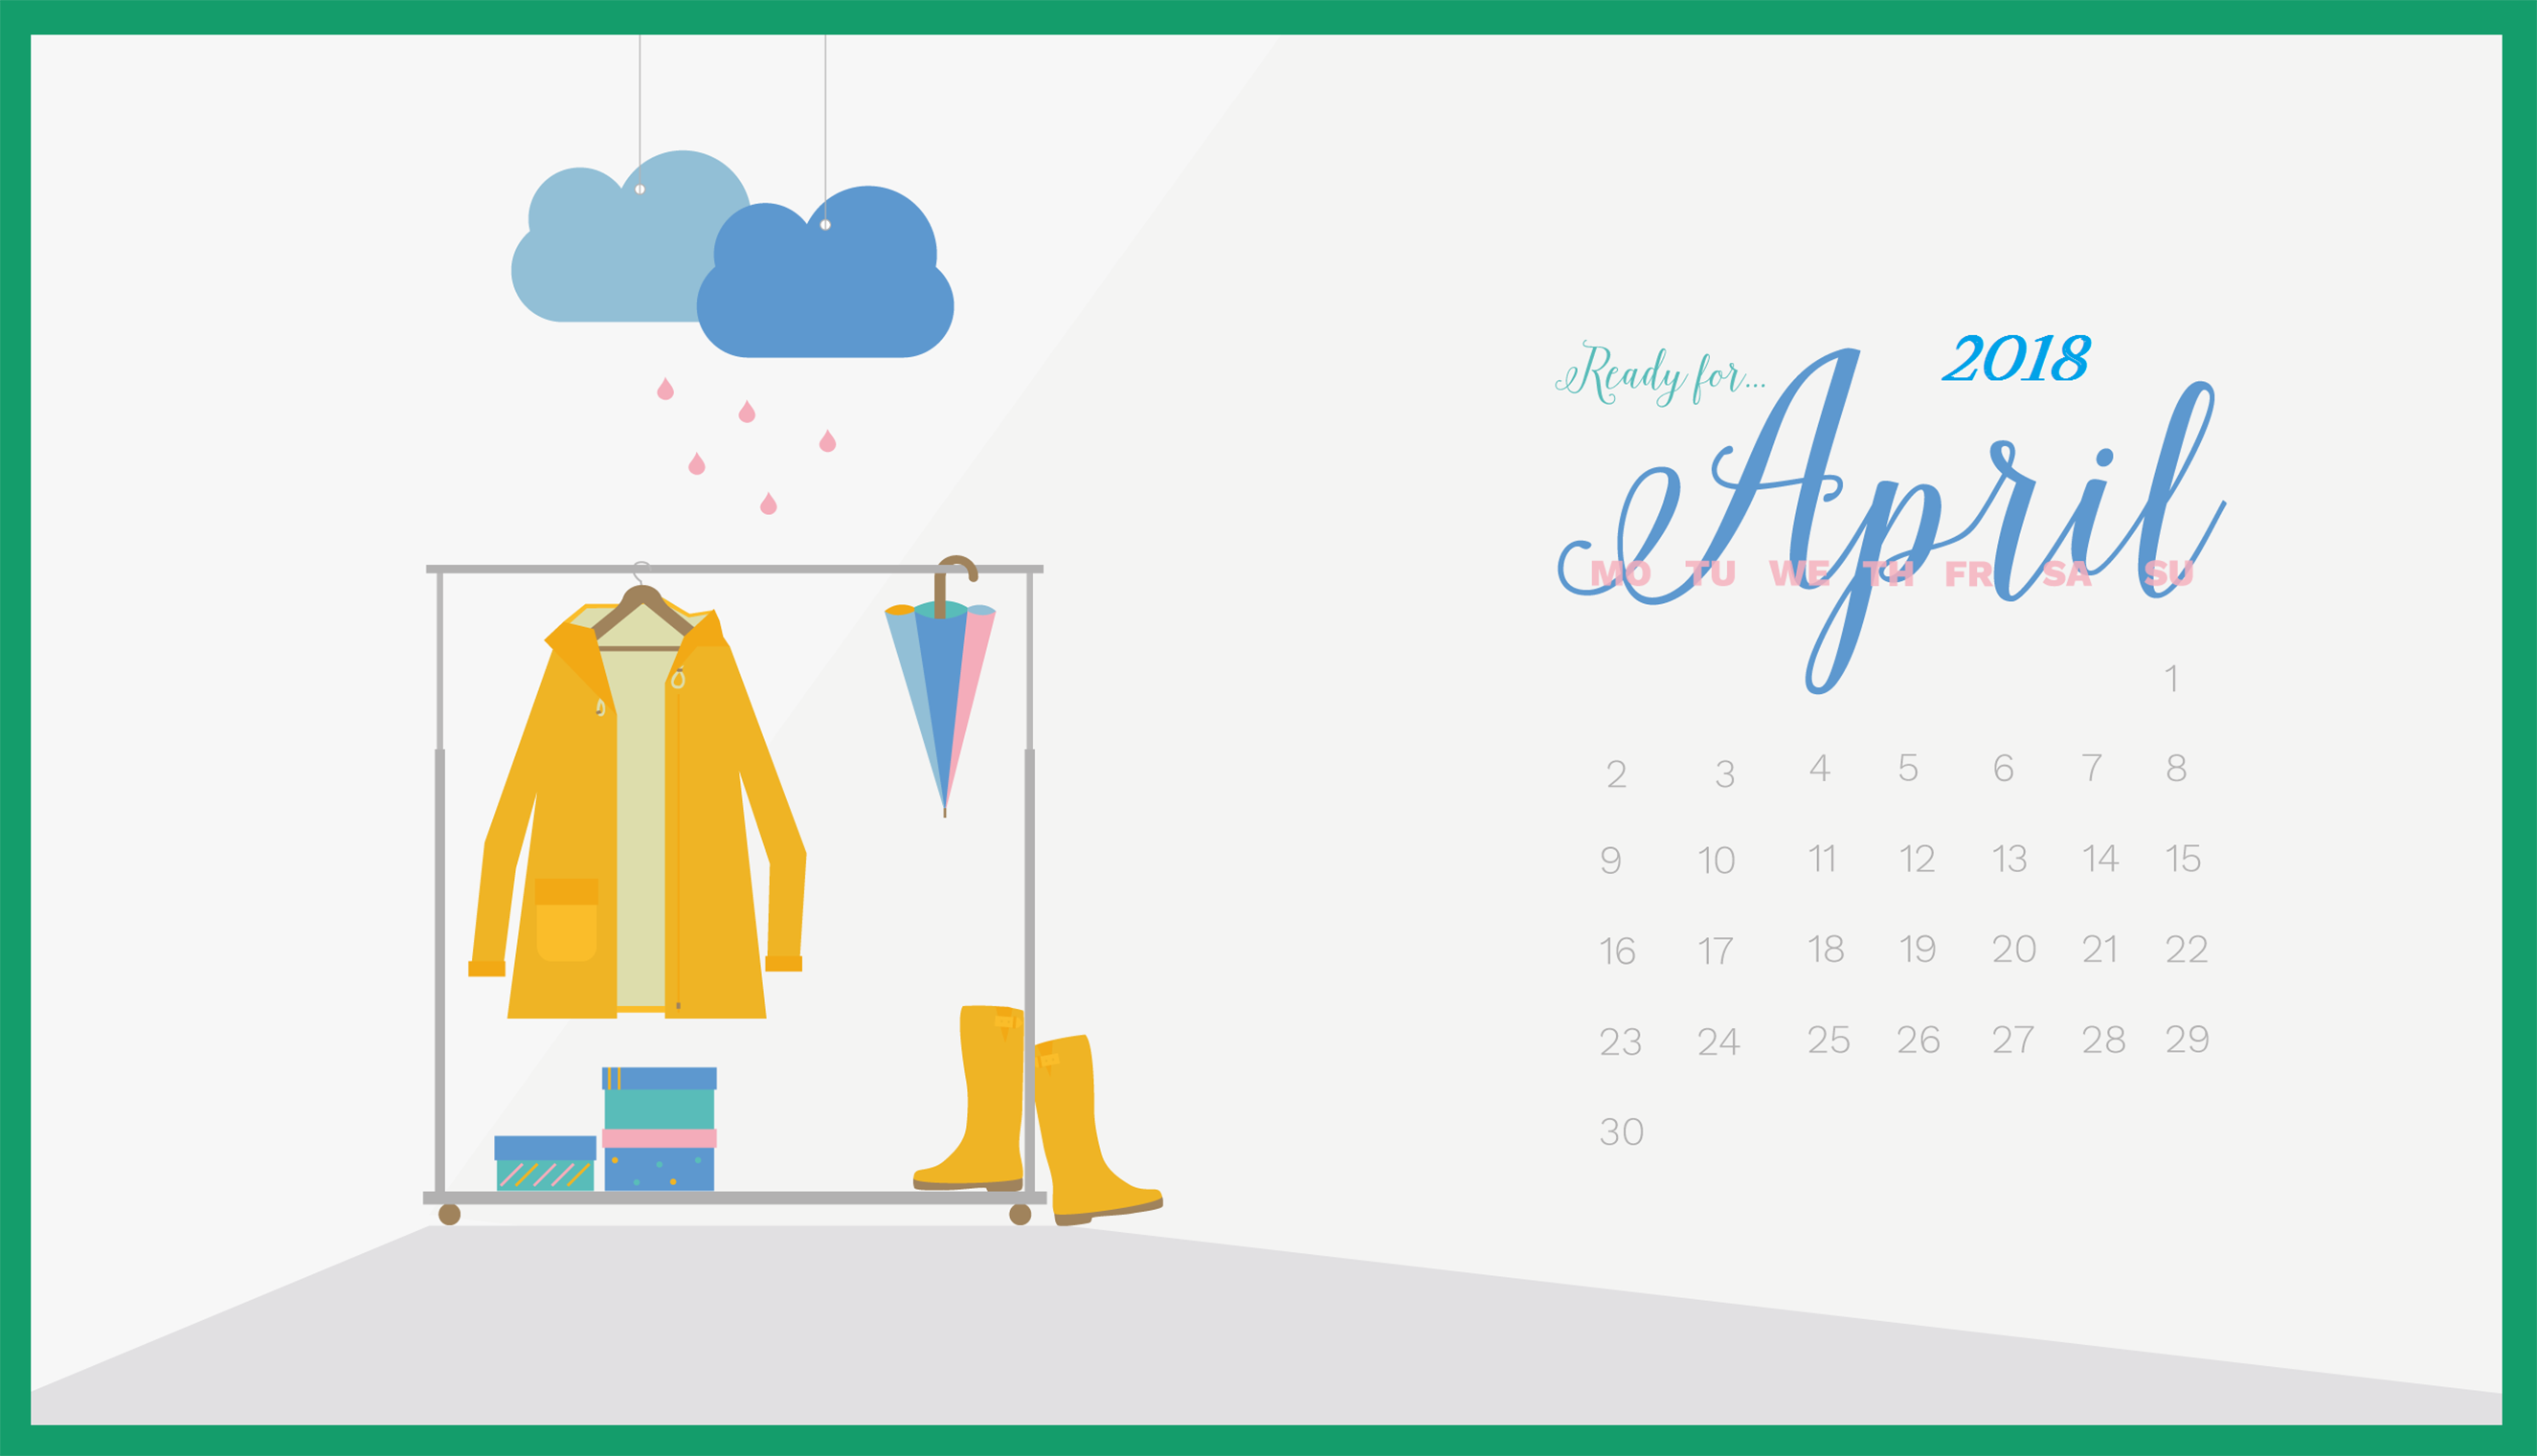 Wallpaper with April 2018 Calendar for PC iPad and SmartPhone 2650x1521